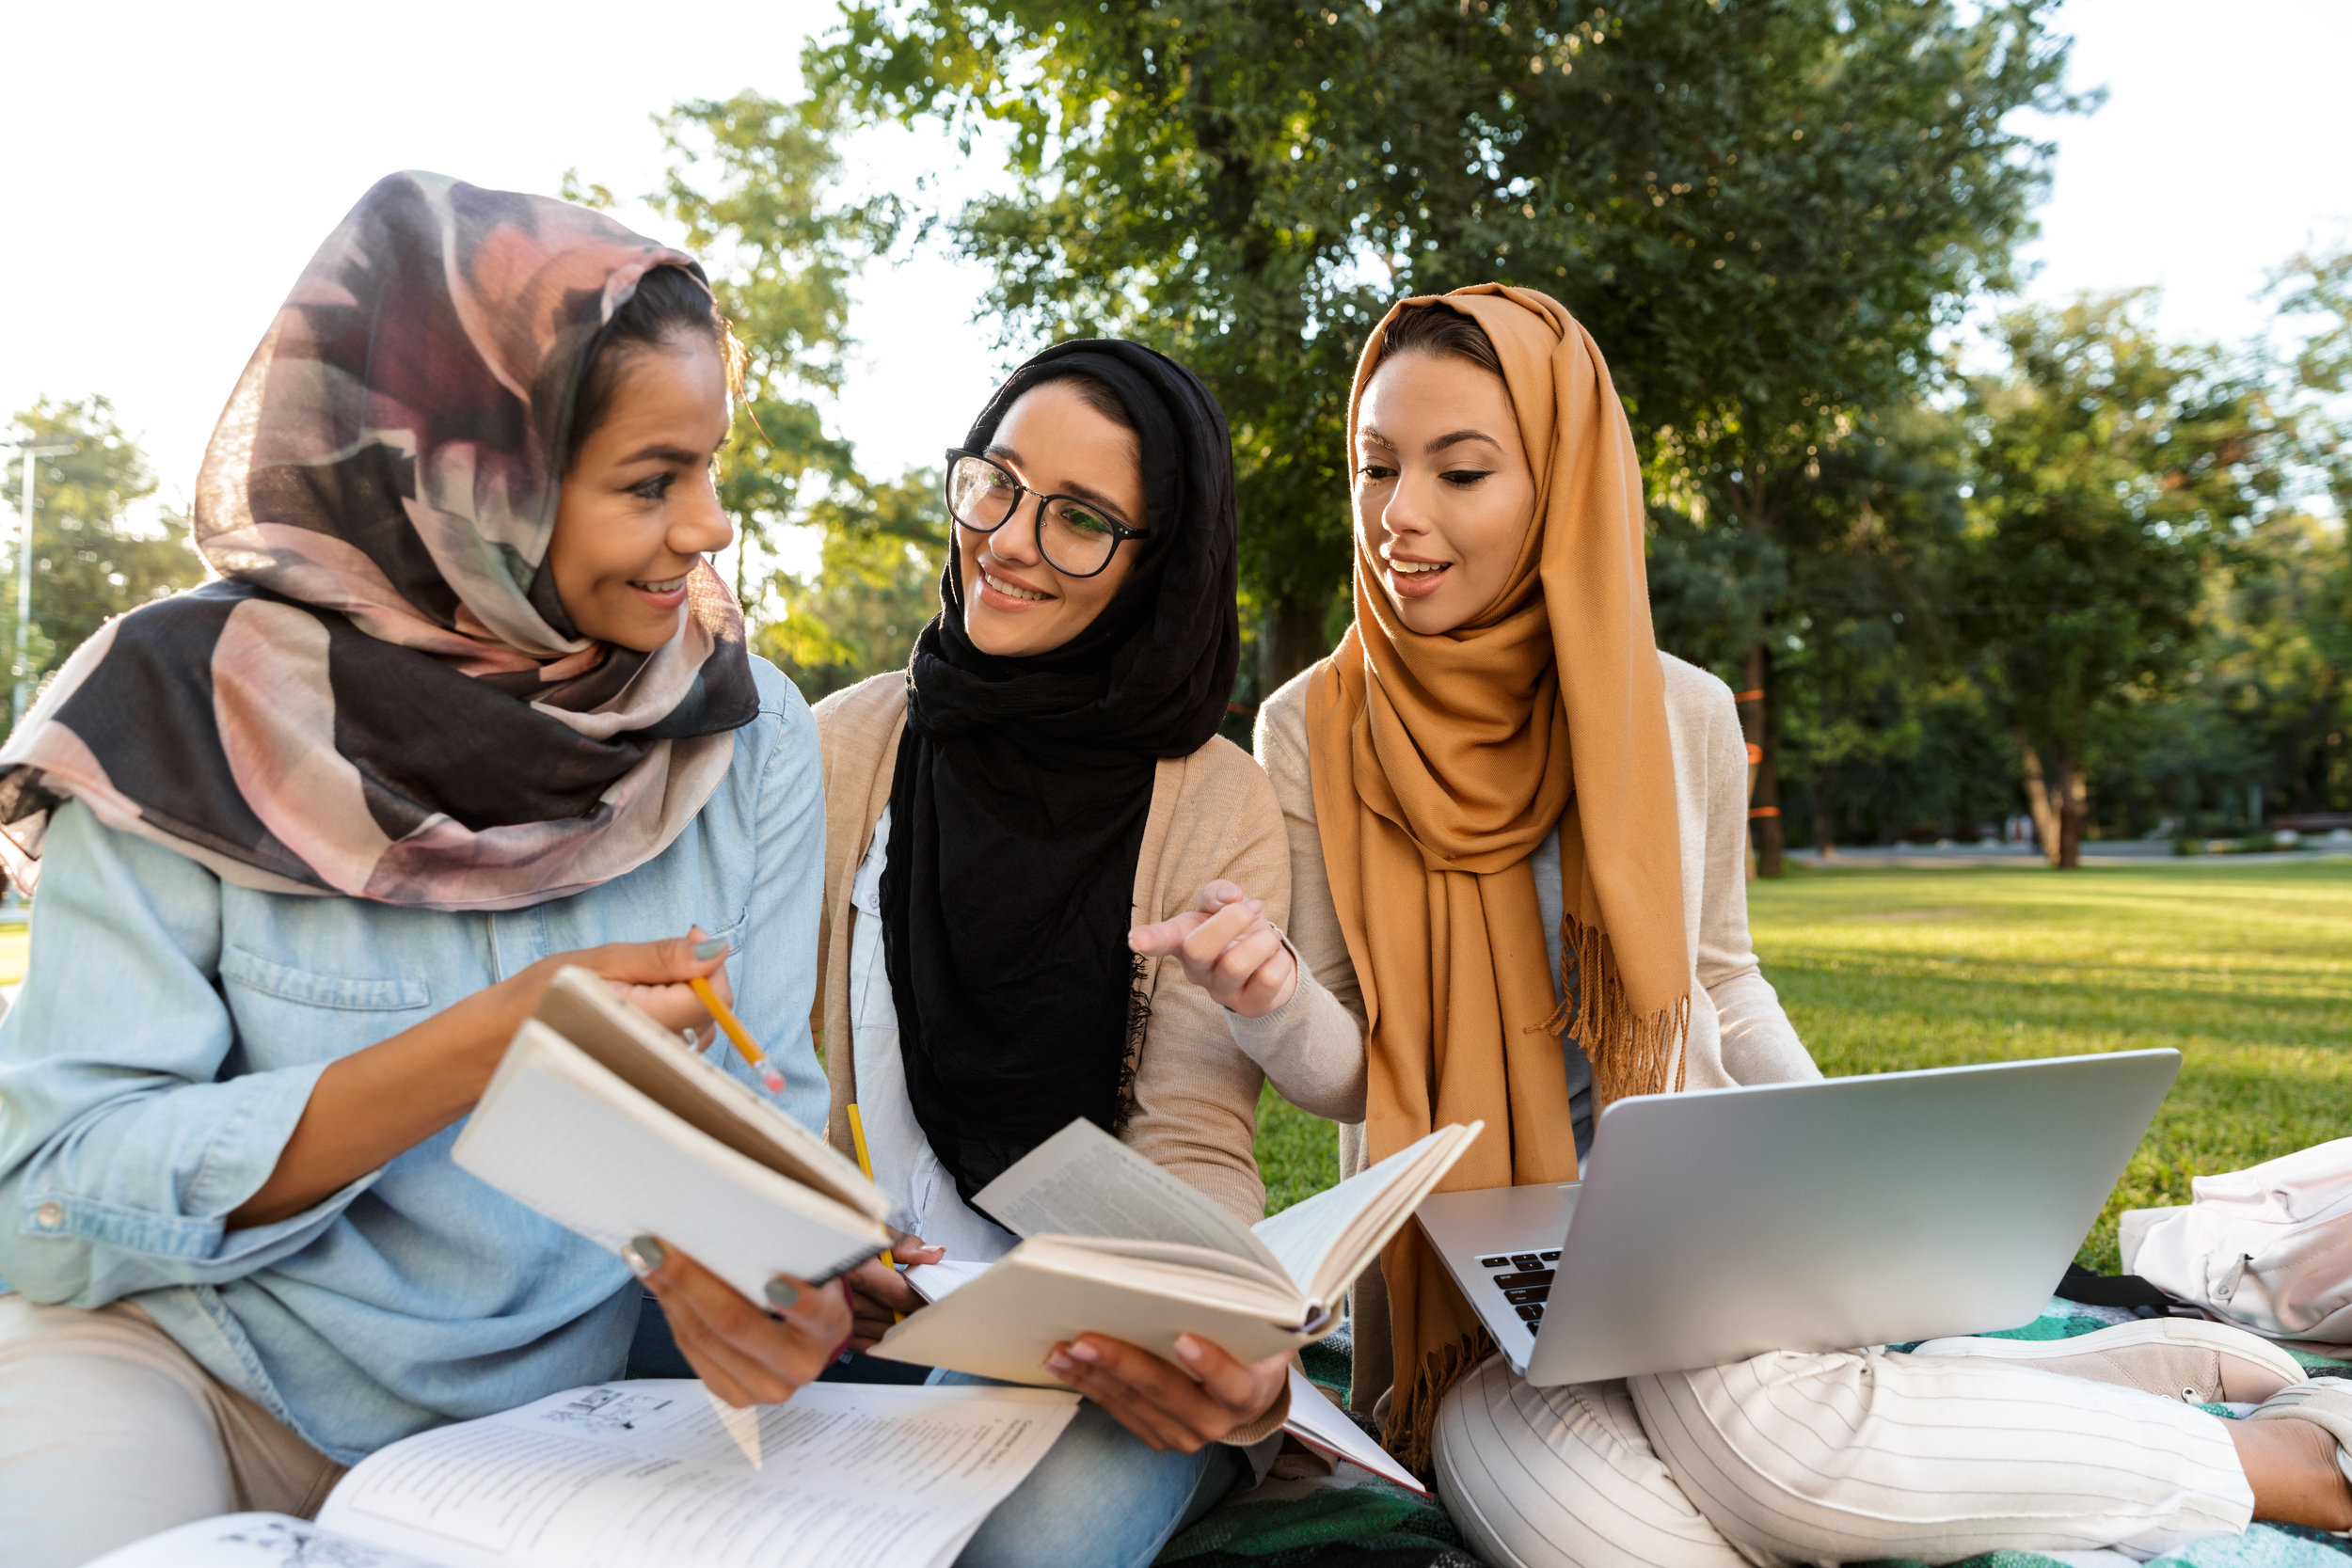 Muslim women Become published authors in uae